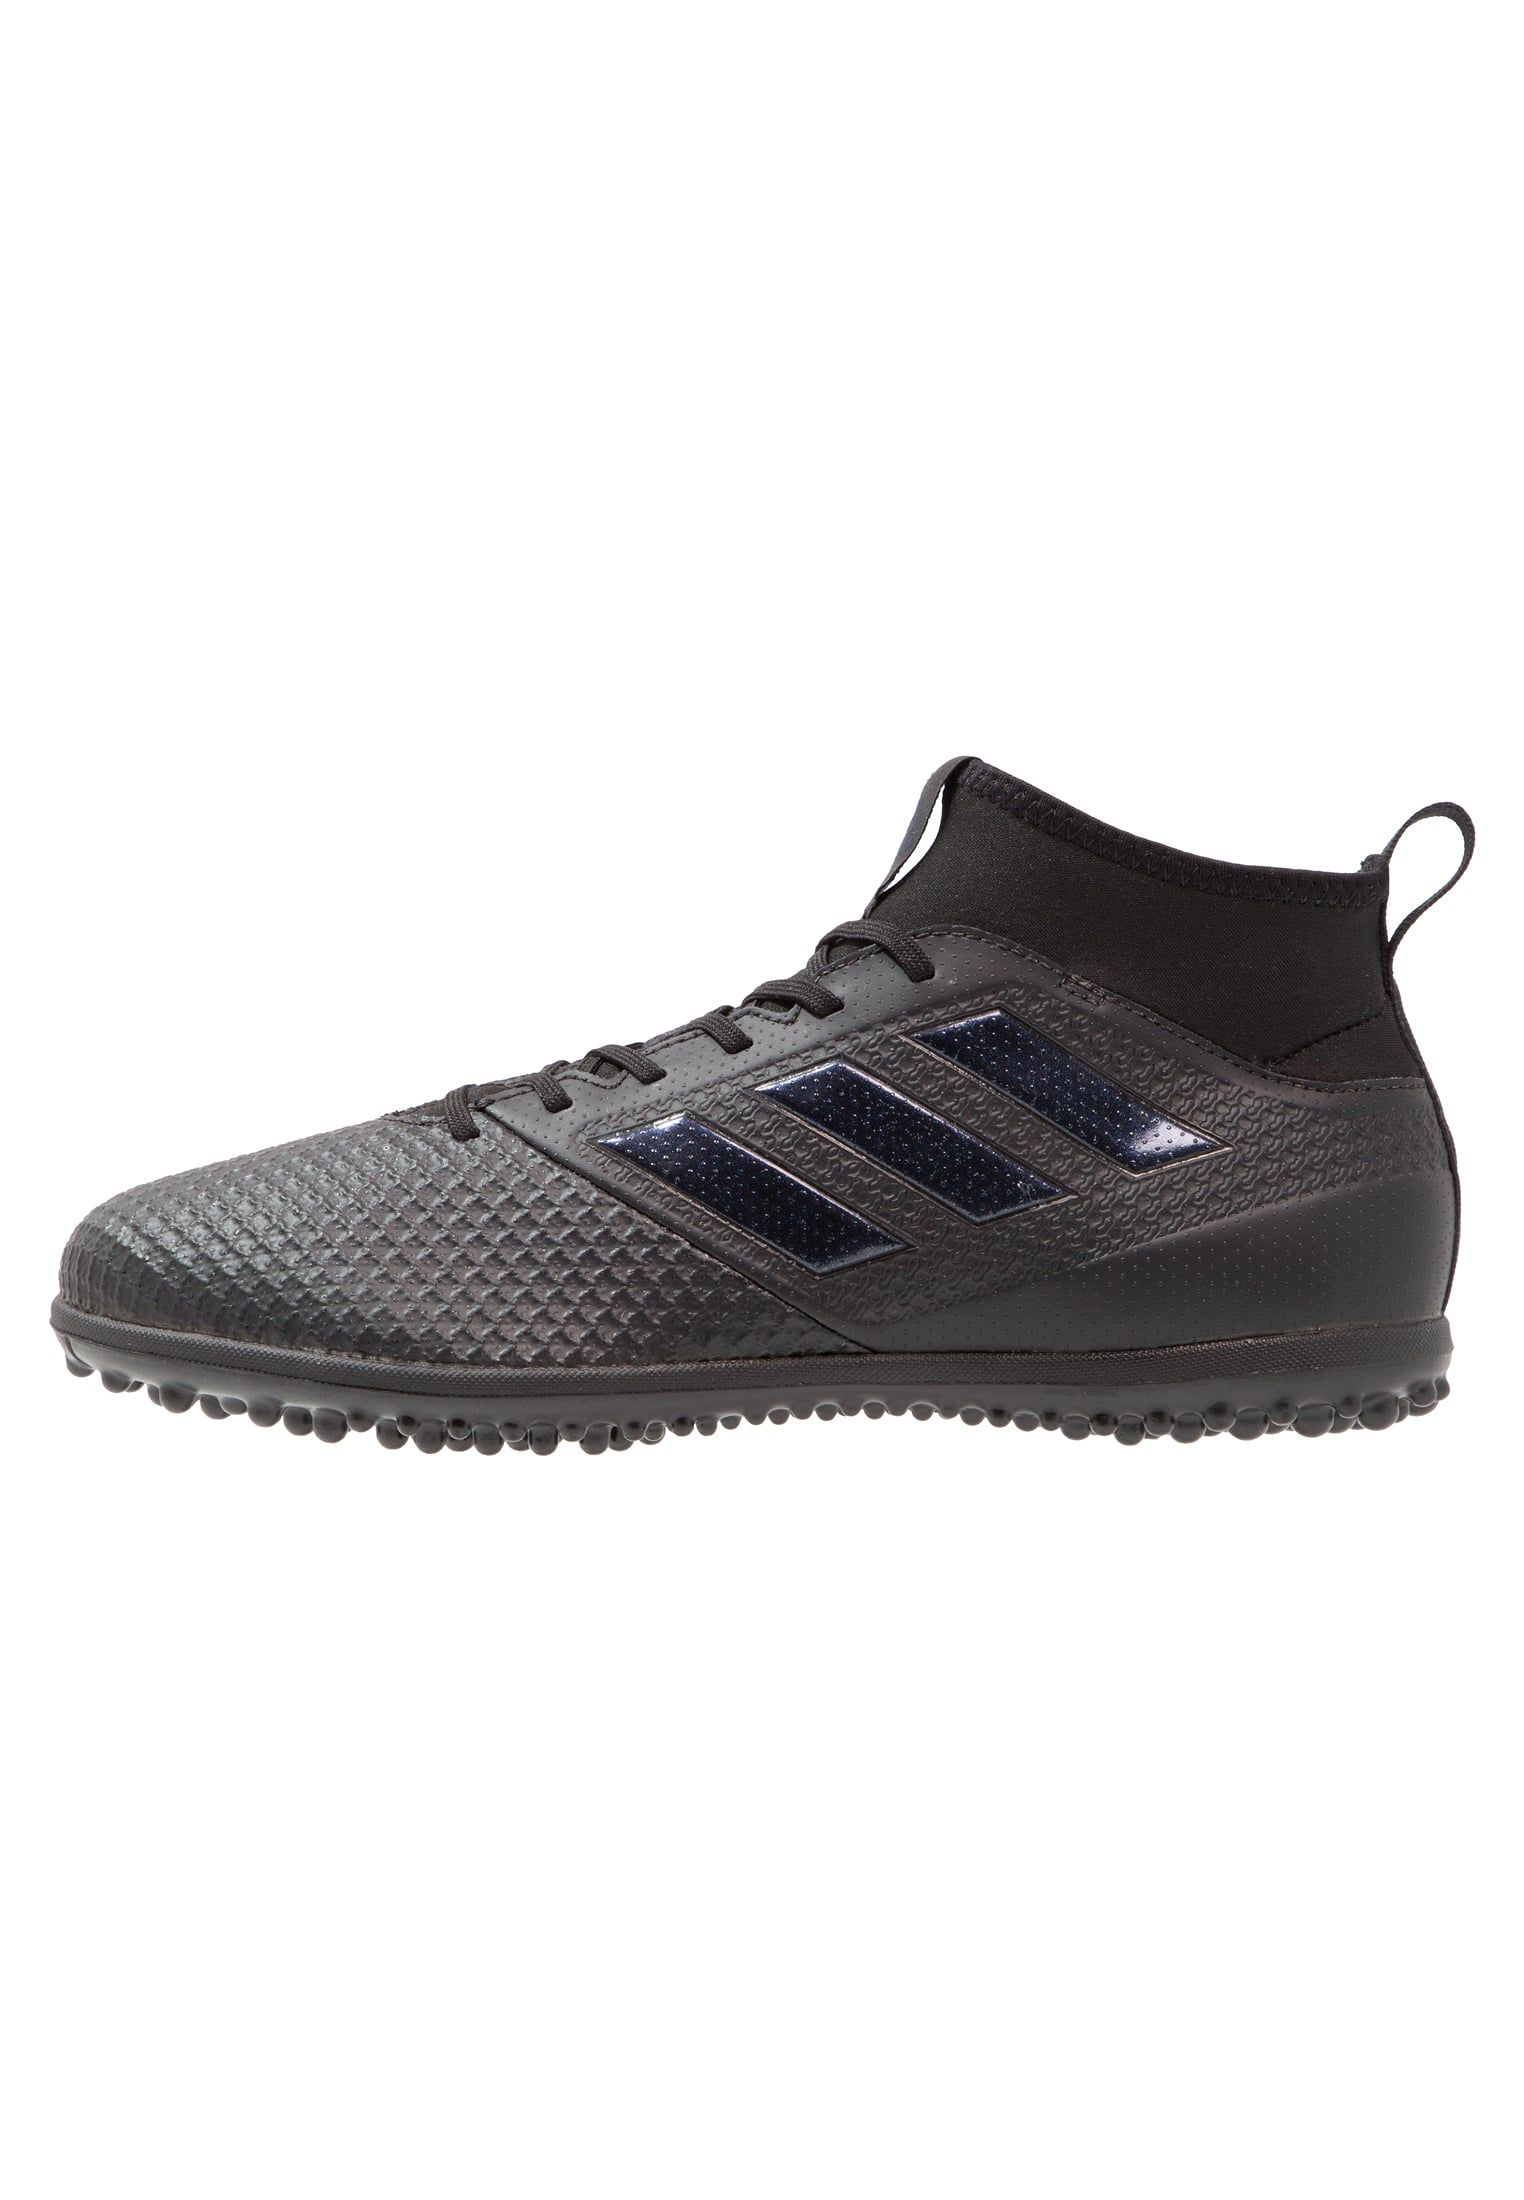 newest a139b 3e14d adidas Performance ACE TANGO 17.3 TF - Astro turf trainers ...